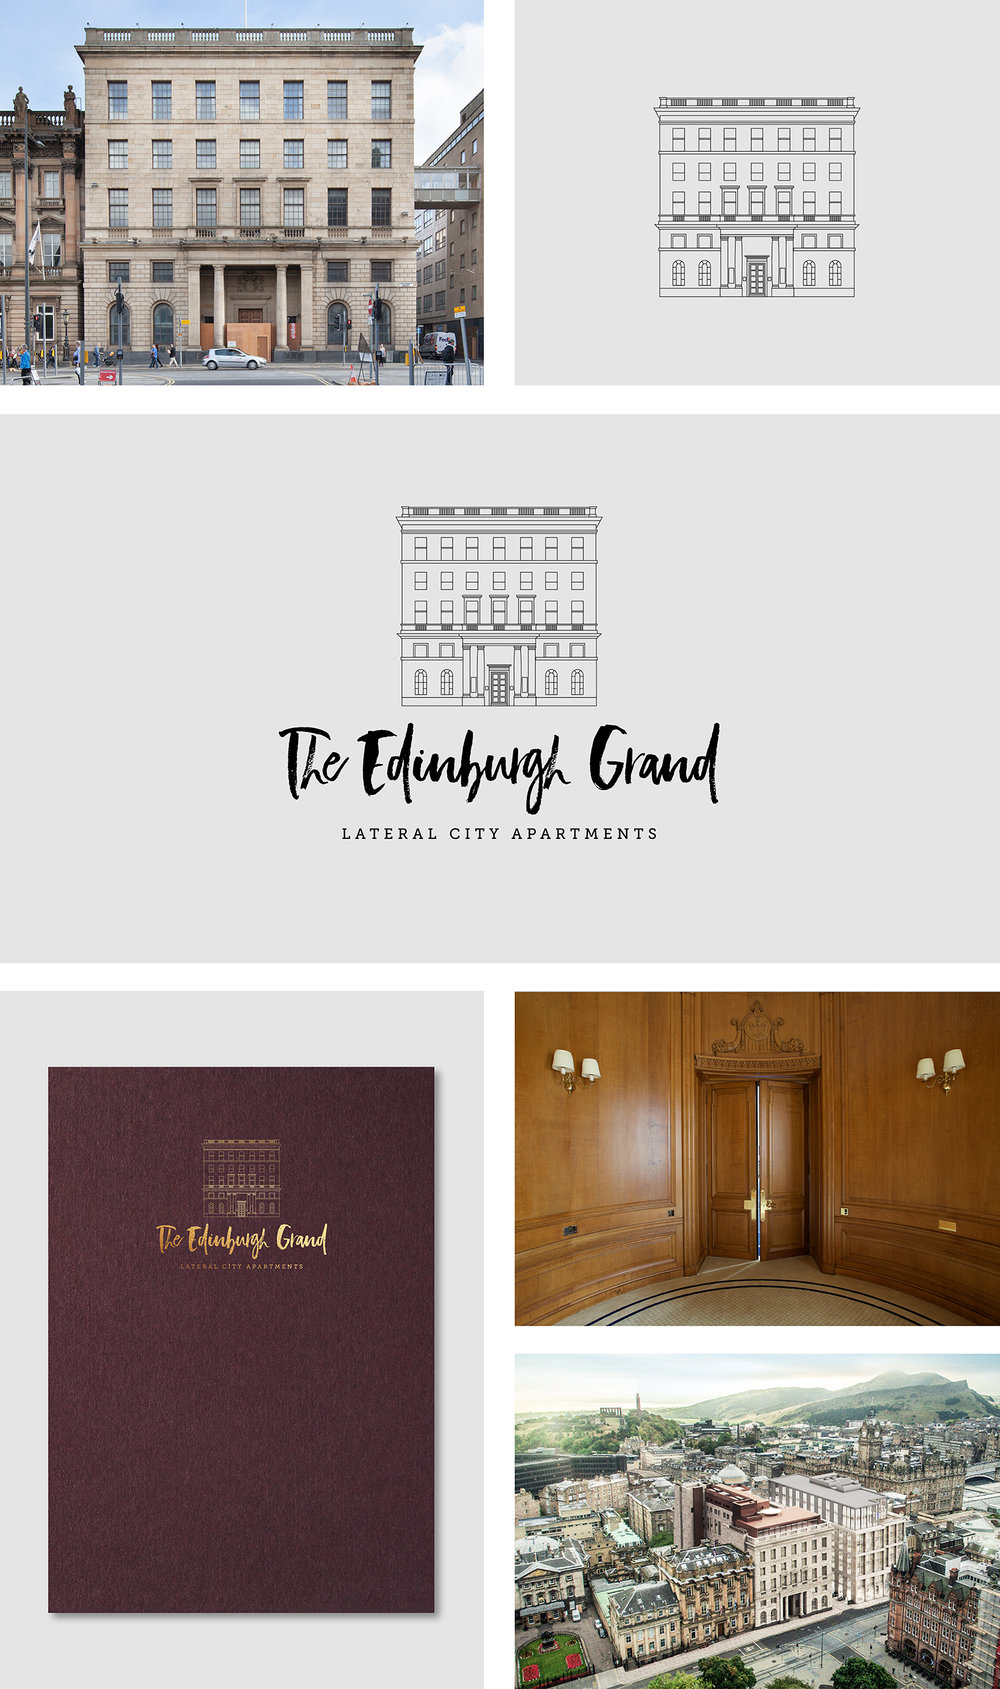 The Edinburgh Grand Branding for Lateral City